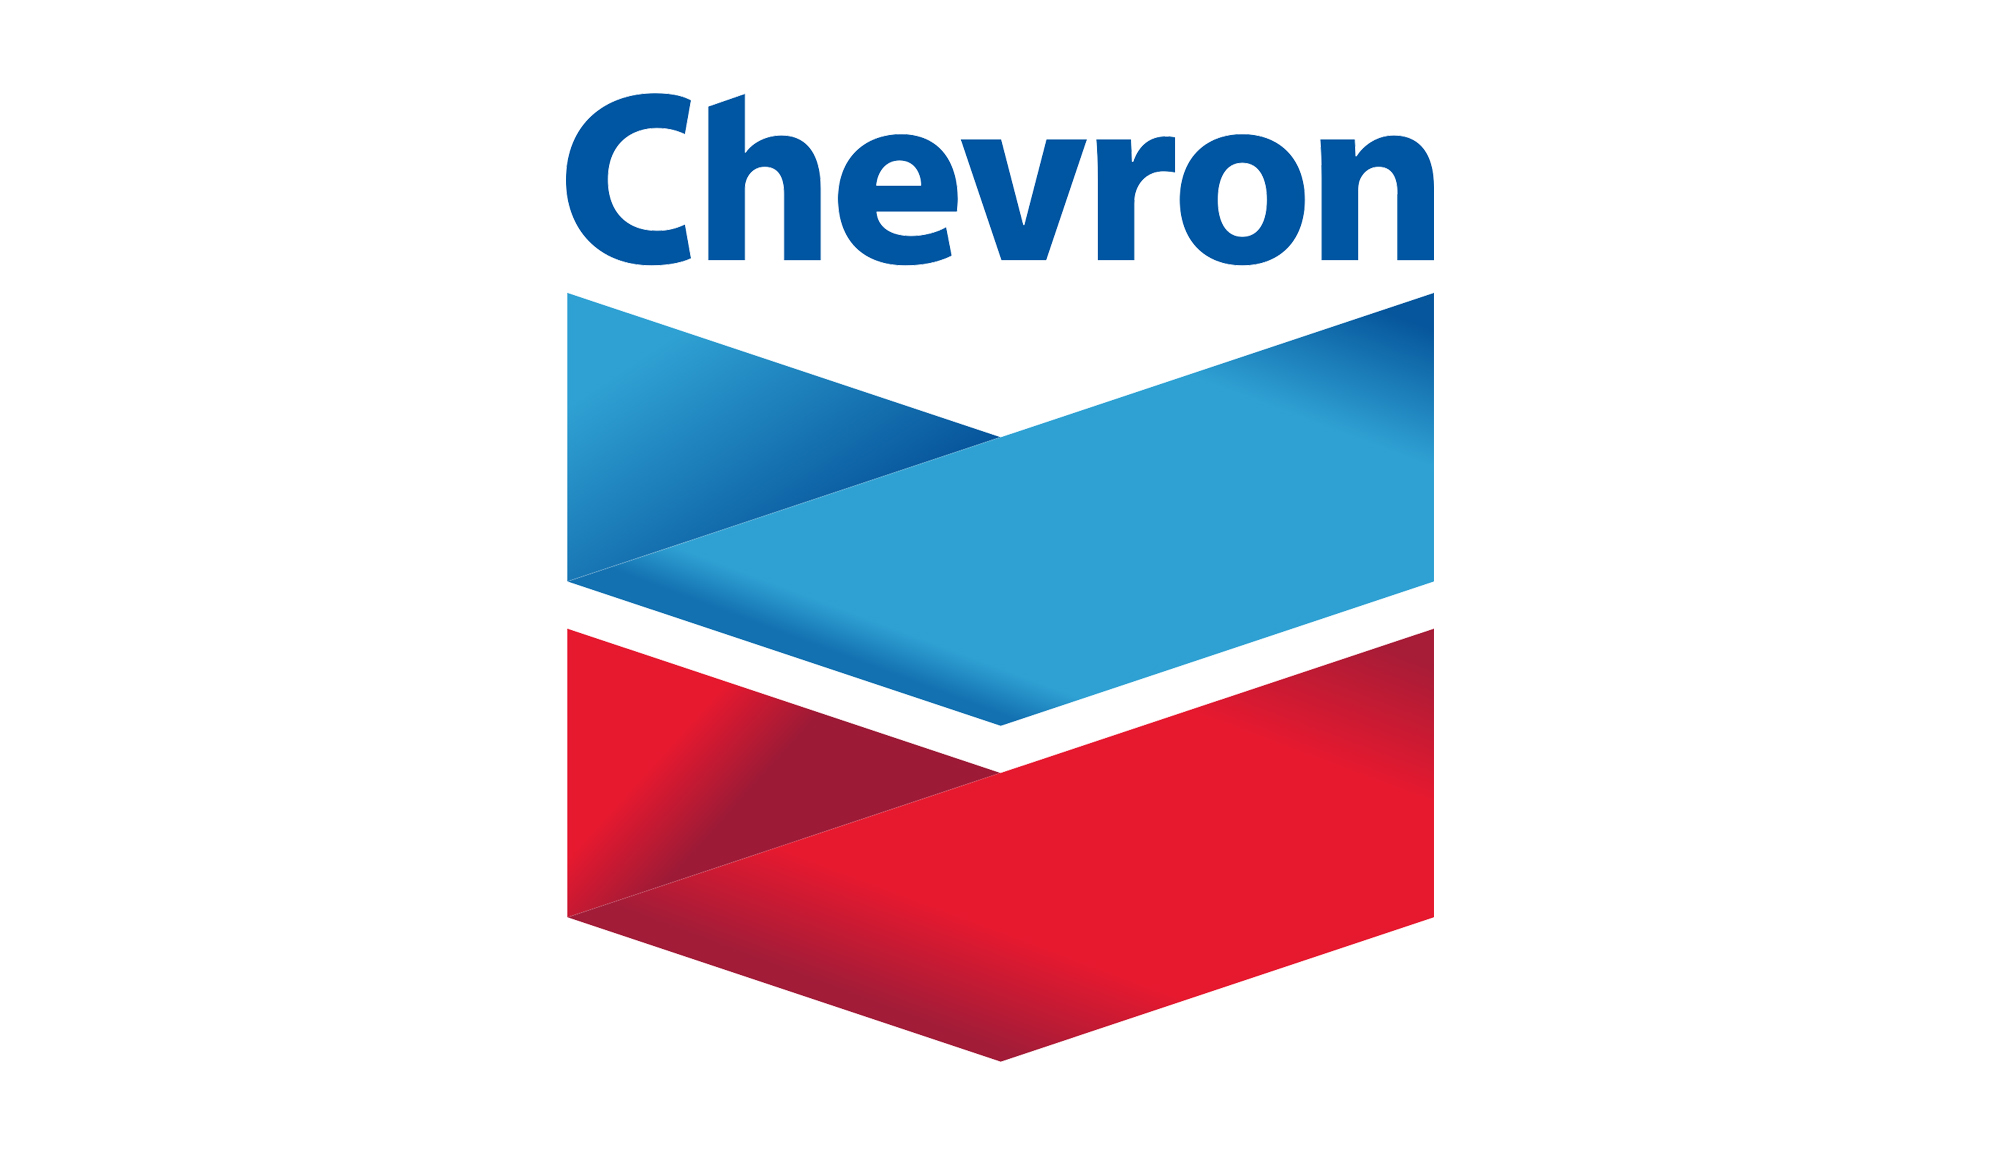 Chevron gas station logo